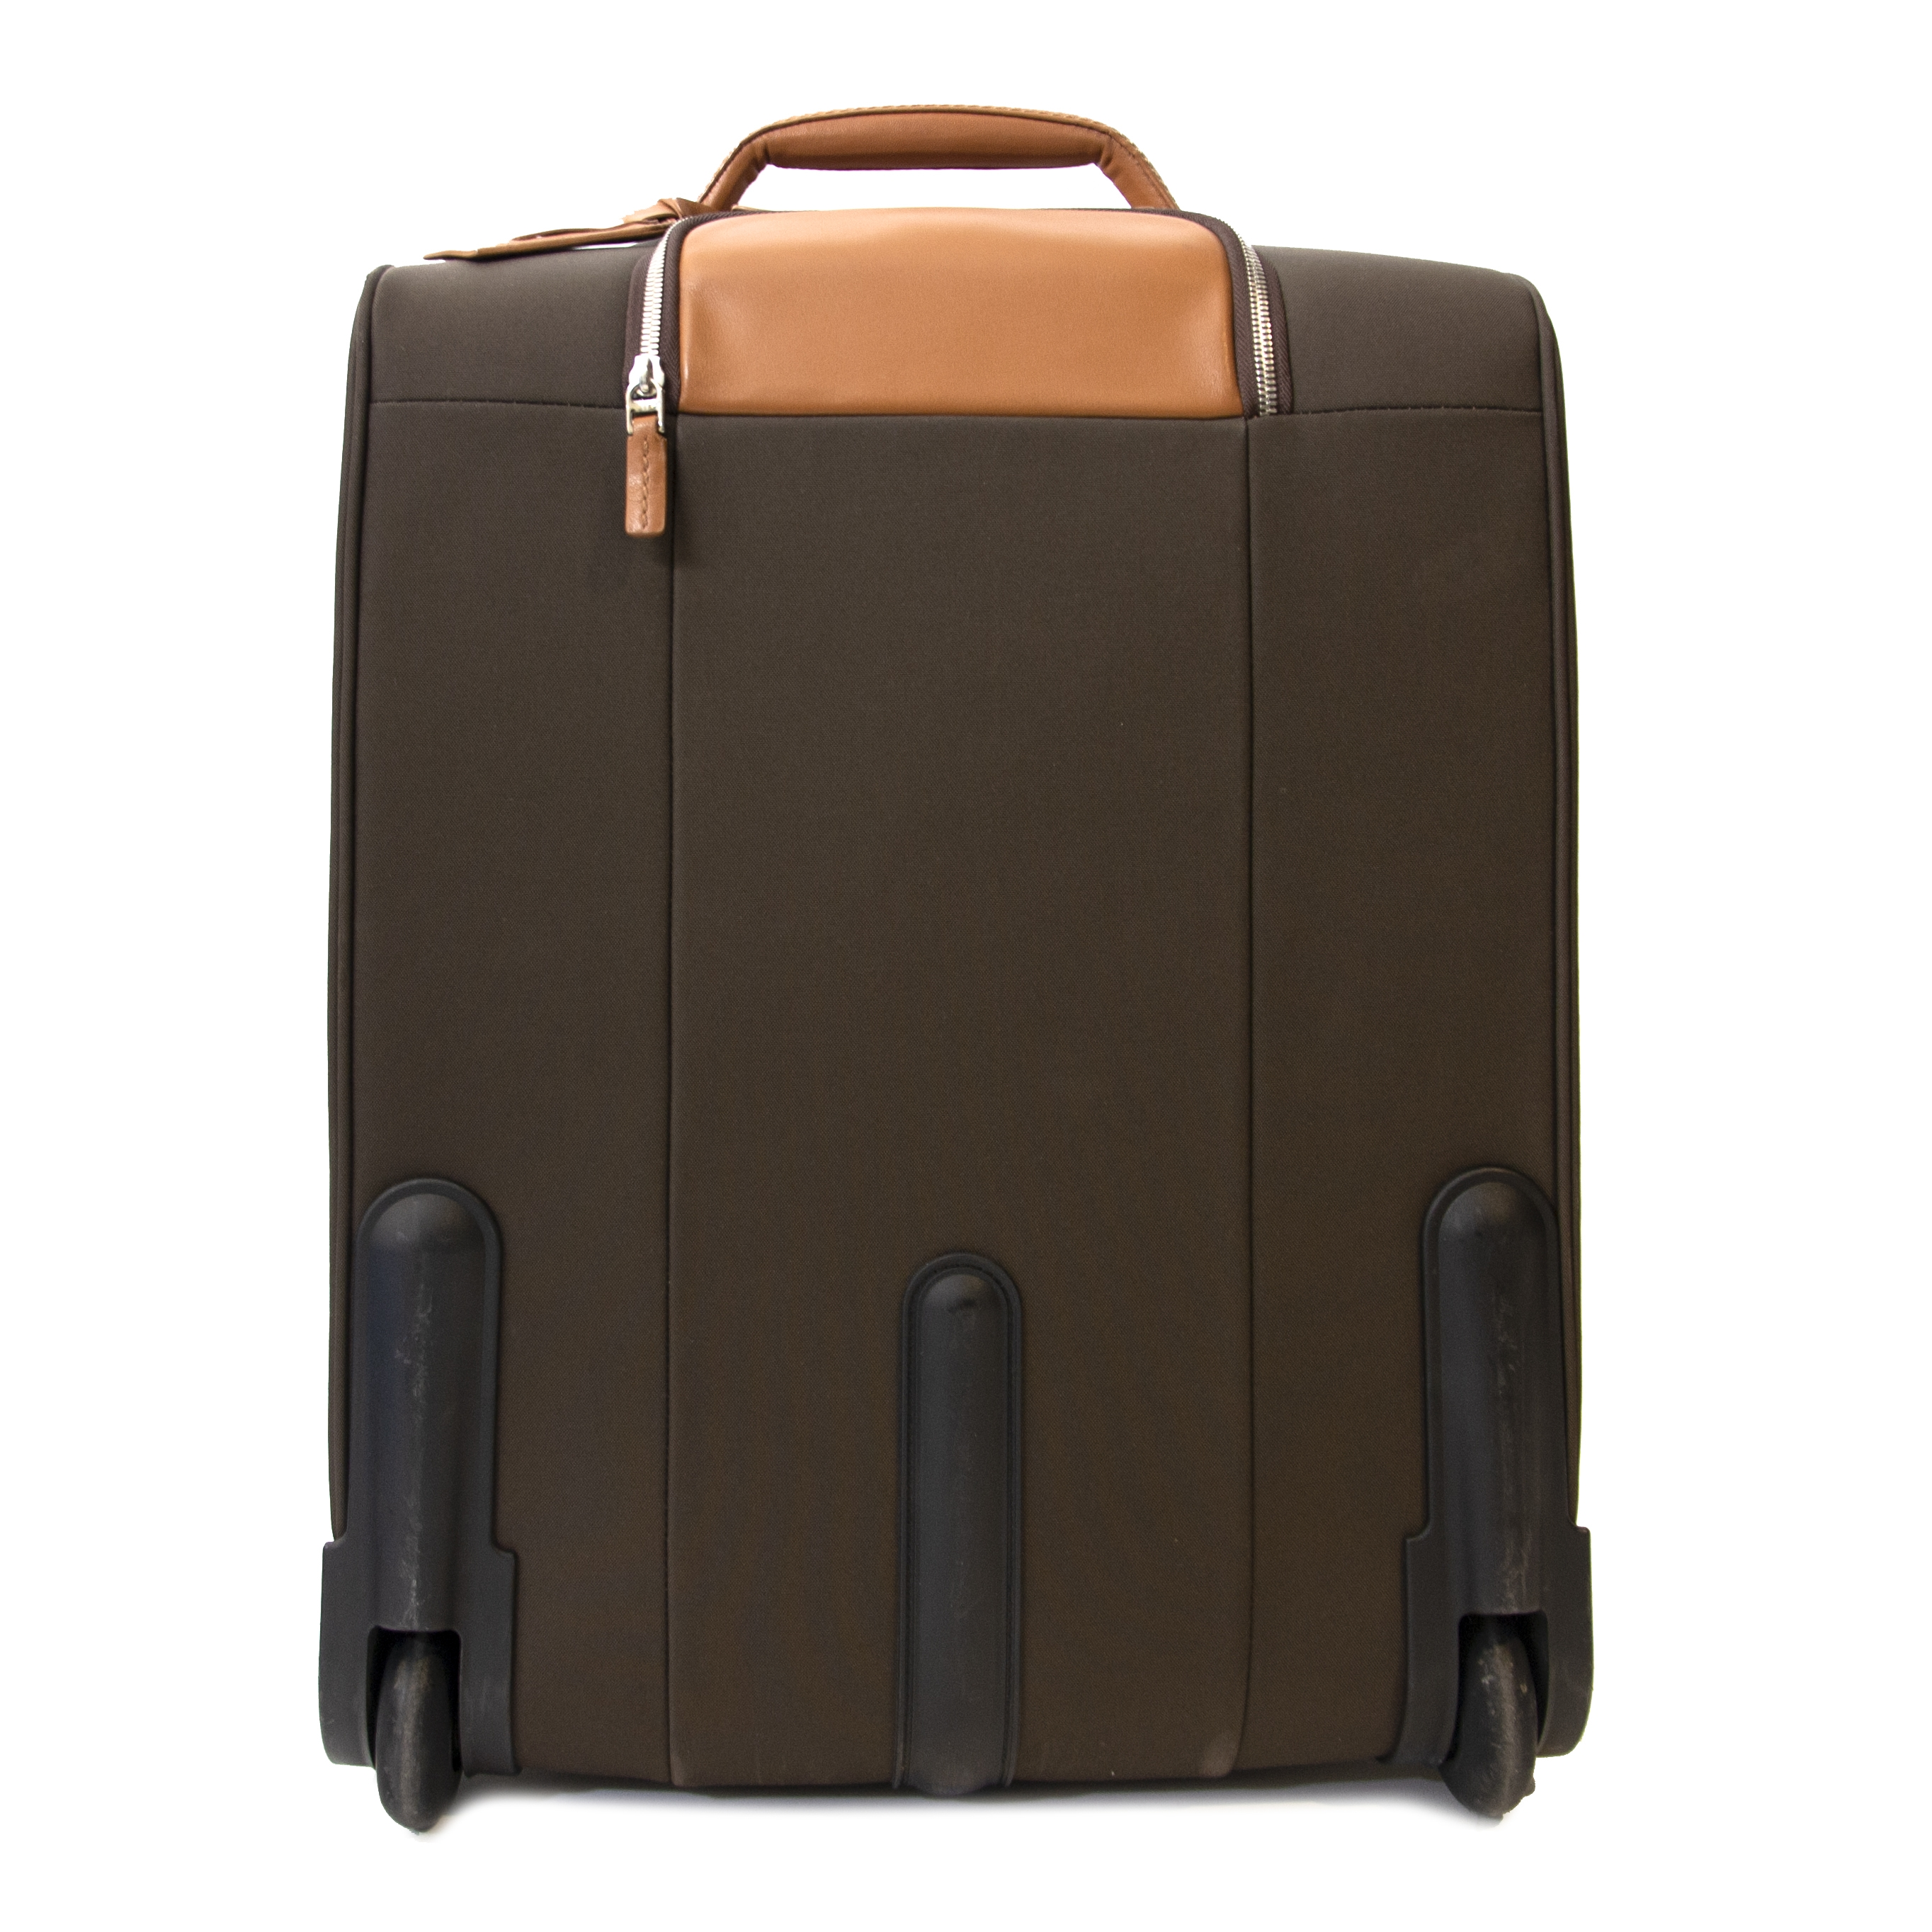 Buy Delvaux luggage at the right price at LabelLOV vintage webshop.